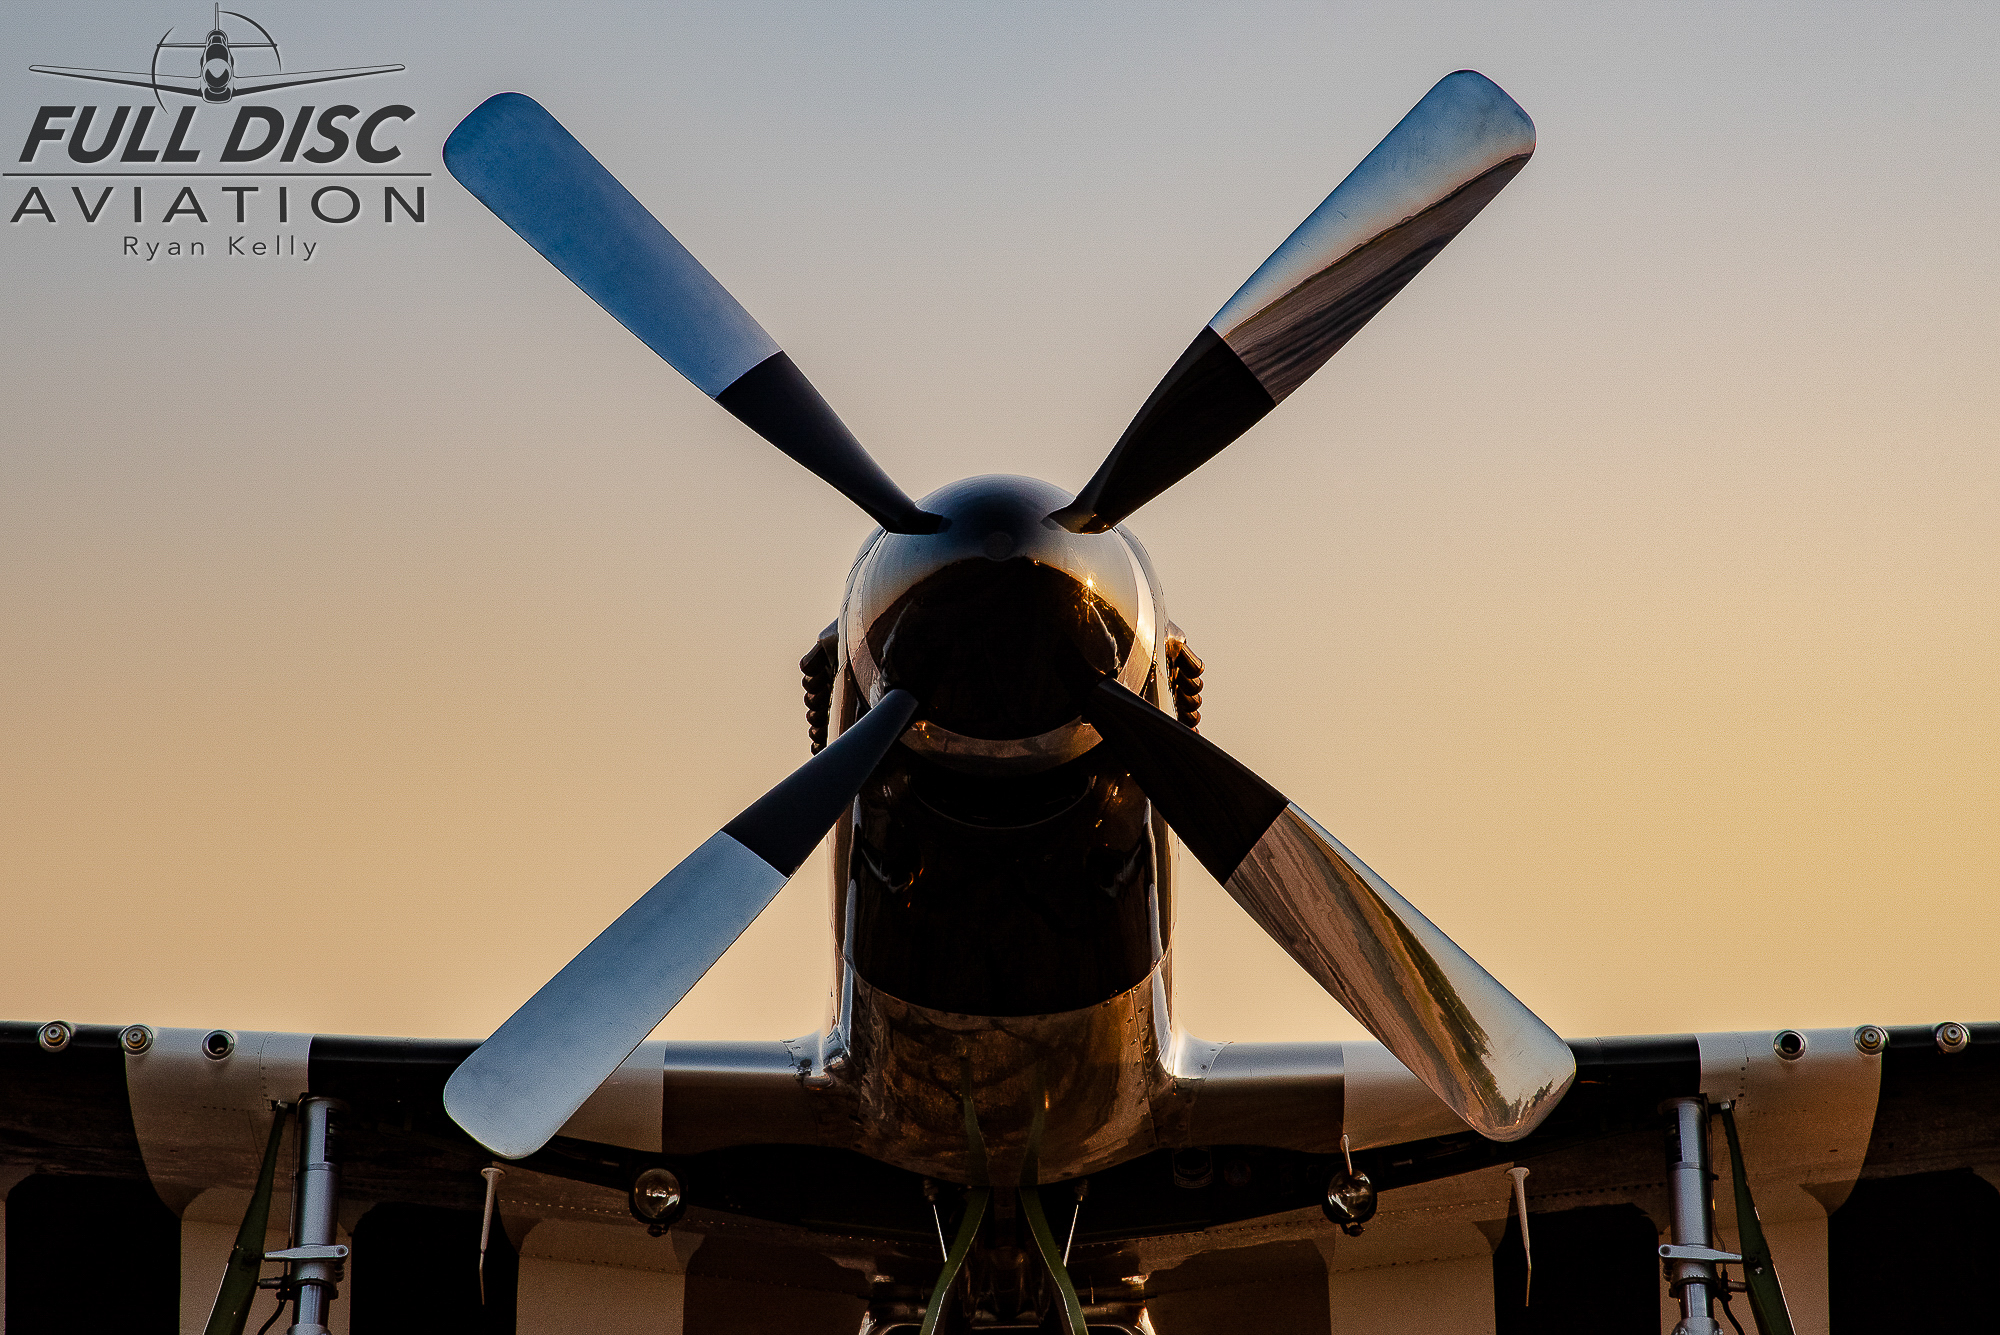 ClassOf45_FullDiscAviation_RyanKelly_August 01, 2019_06.jpg